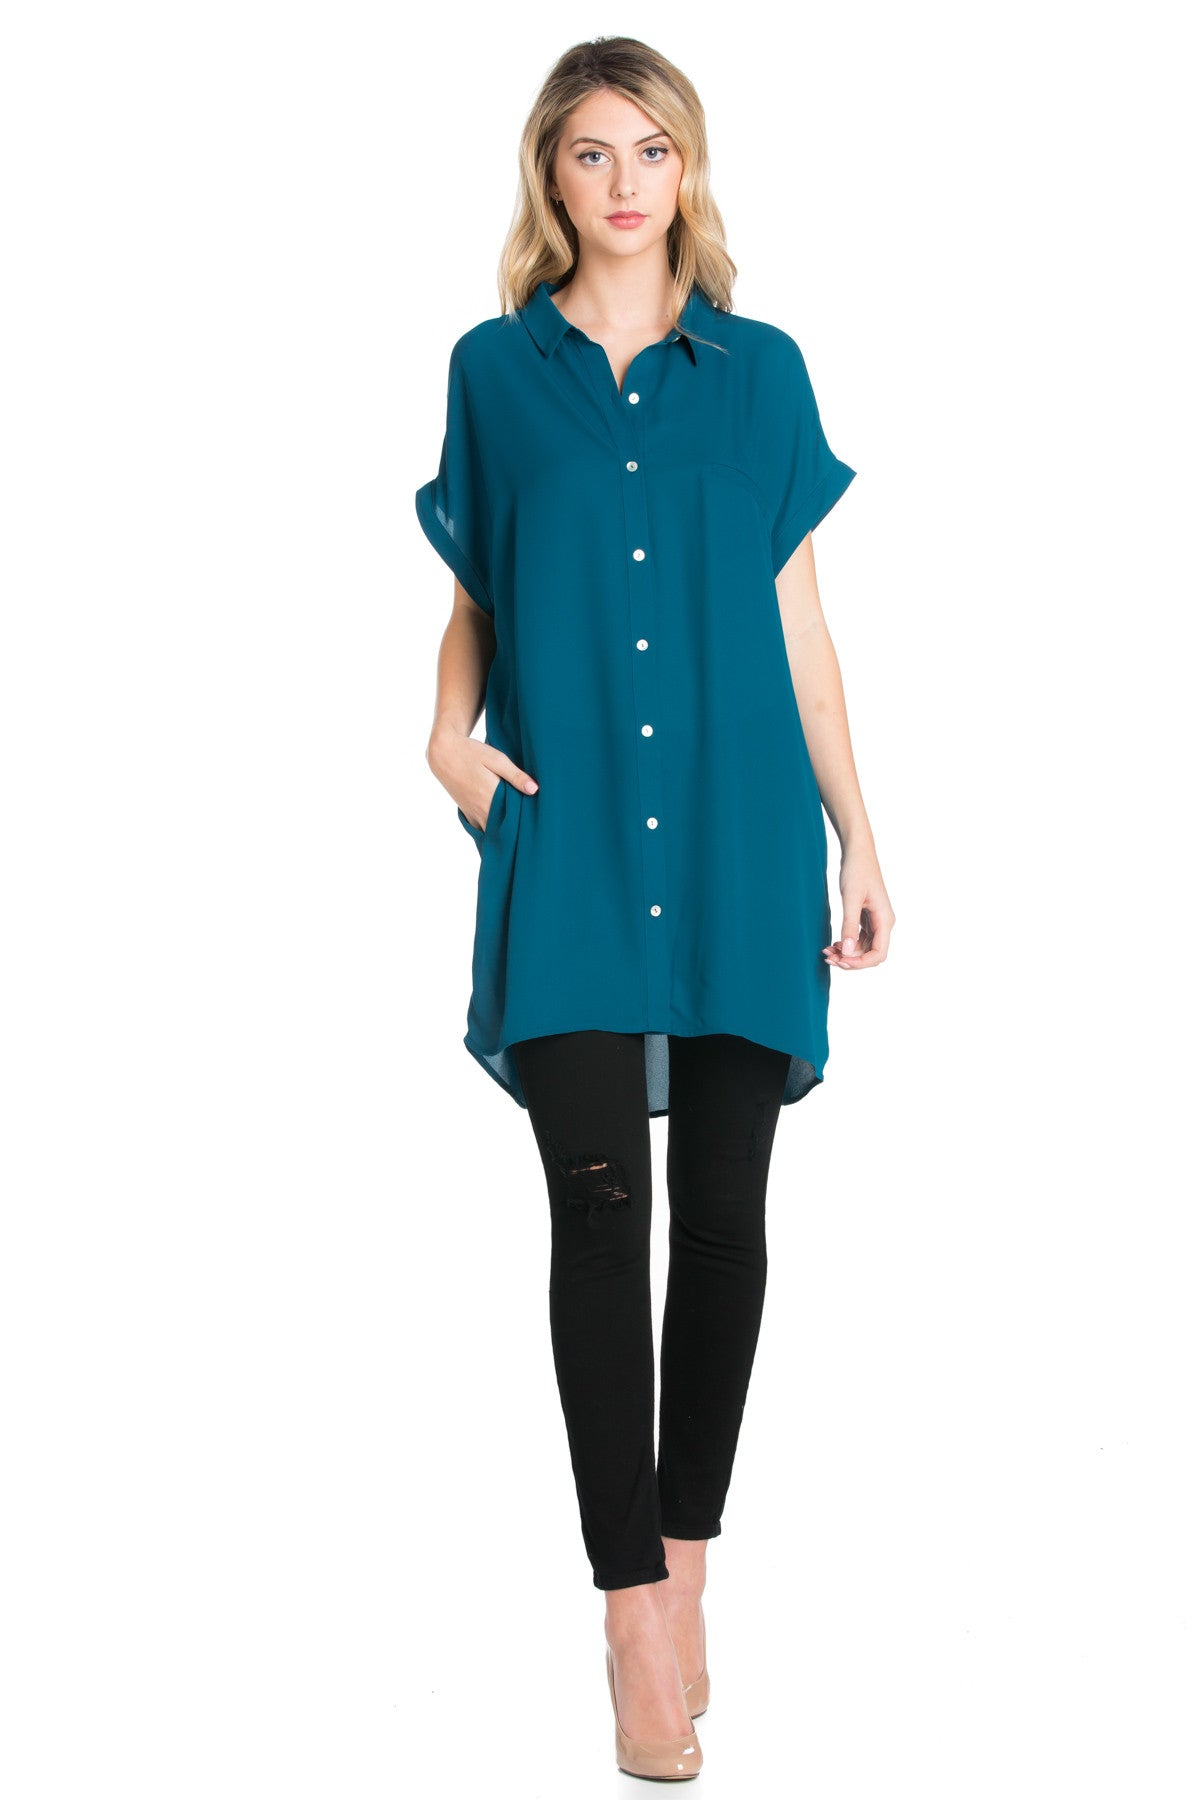 Short Sleeve Longline Button Down Chiffon Top in Midnight Blue - Tops - My Yuccie - 11